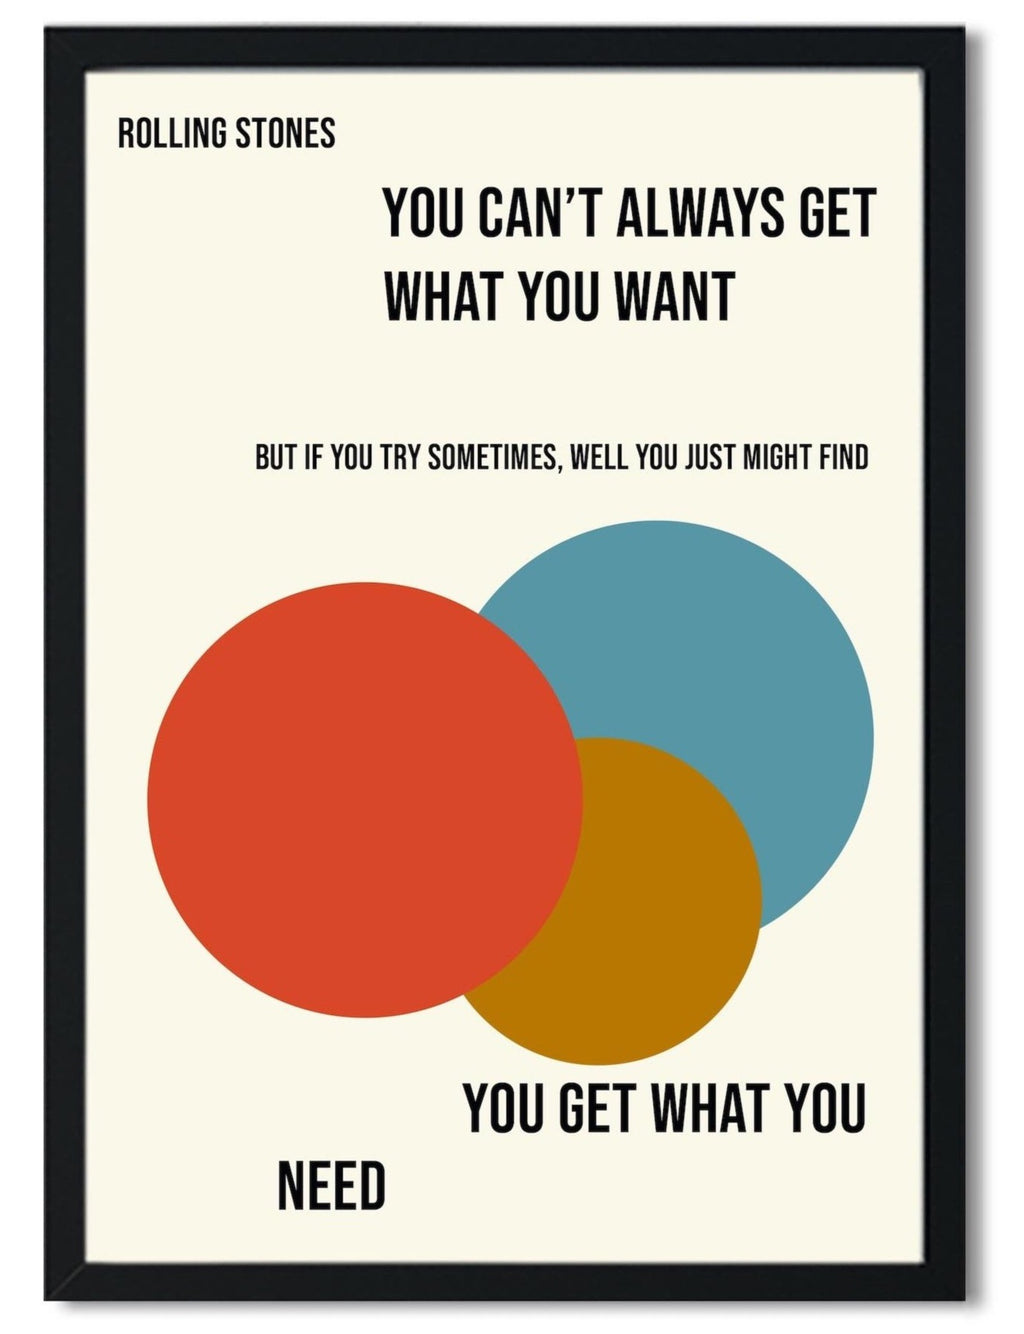 Rolling Stones you can't always get what you want retro art print